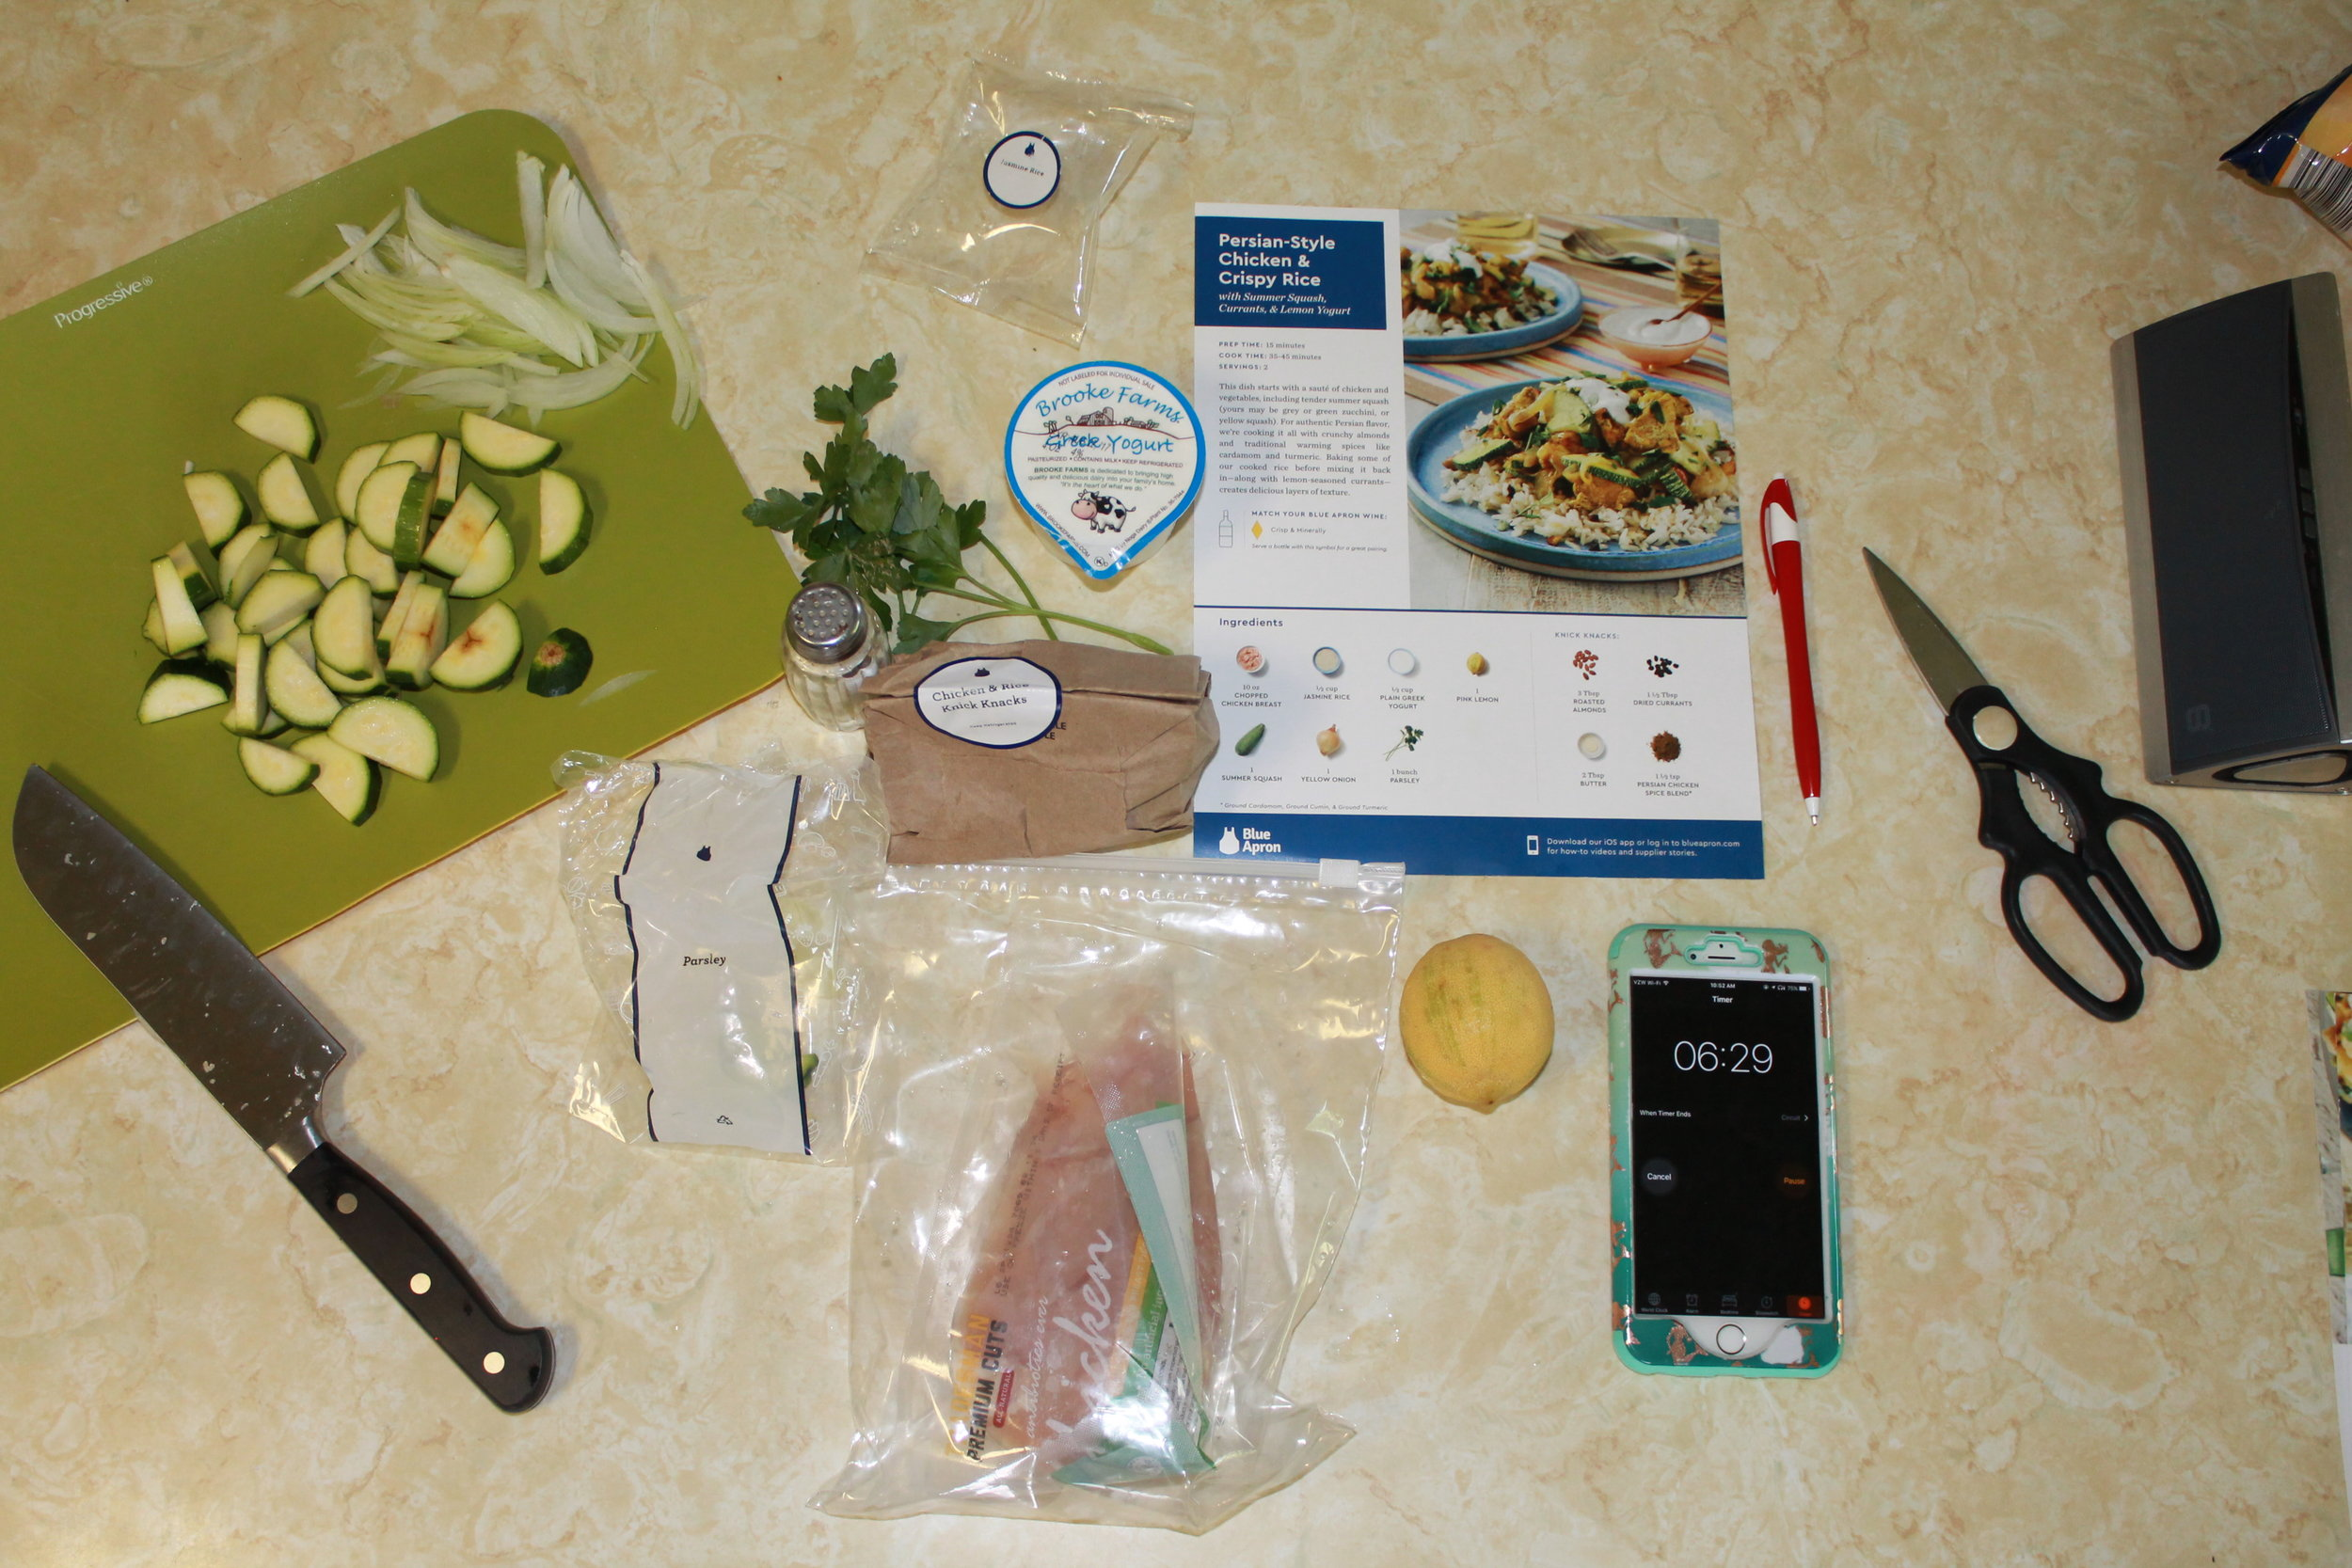 Pre-prep set up! I liked that all the ingredients were in one place and it was easy to carry around the recipe guide and grab the items from their respective spots of the house.